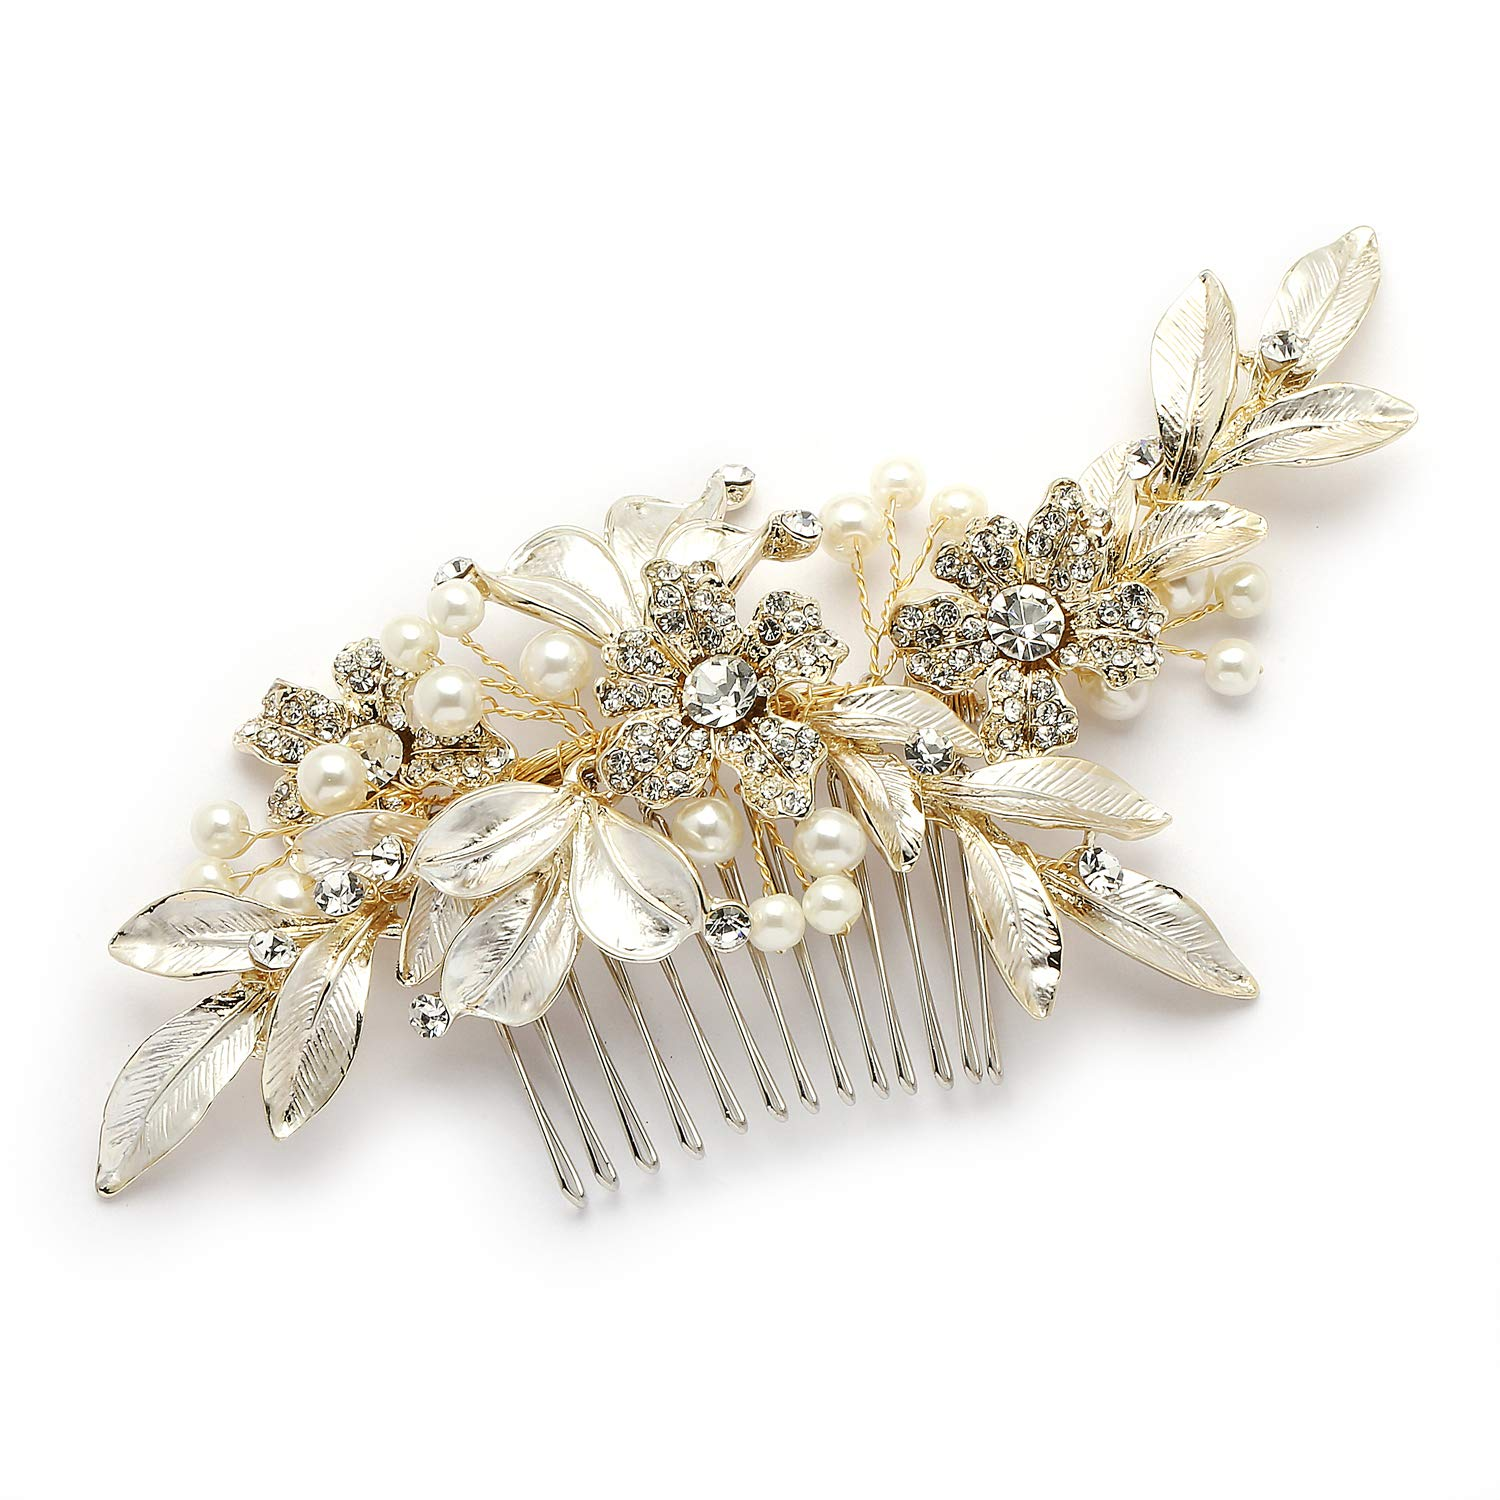 Mariell Designer Gold Bridal Hair Comb with Hand Painted Silvery-Golden Leaves and Pave Crystals by Mariell